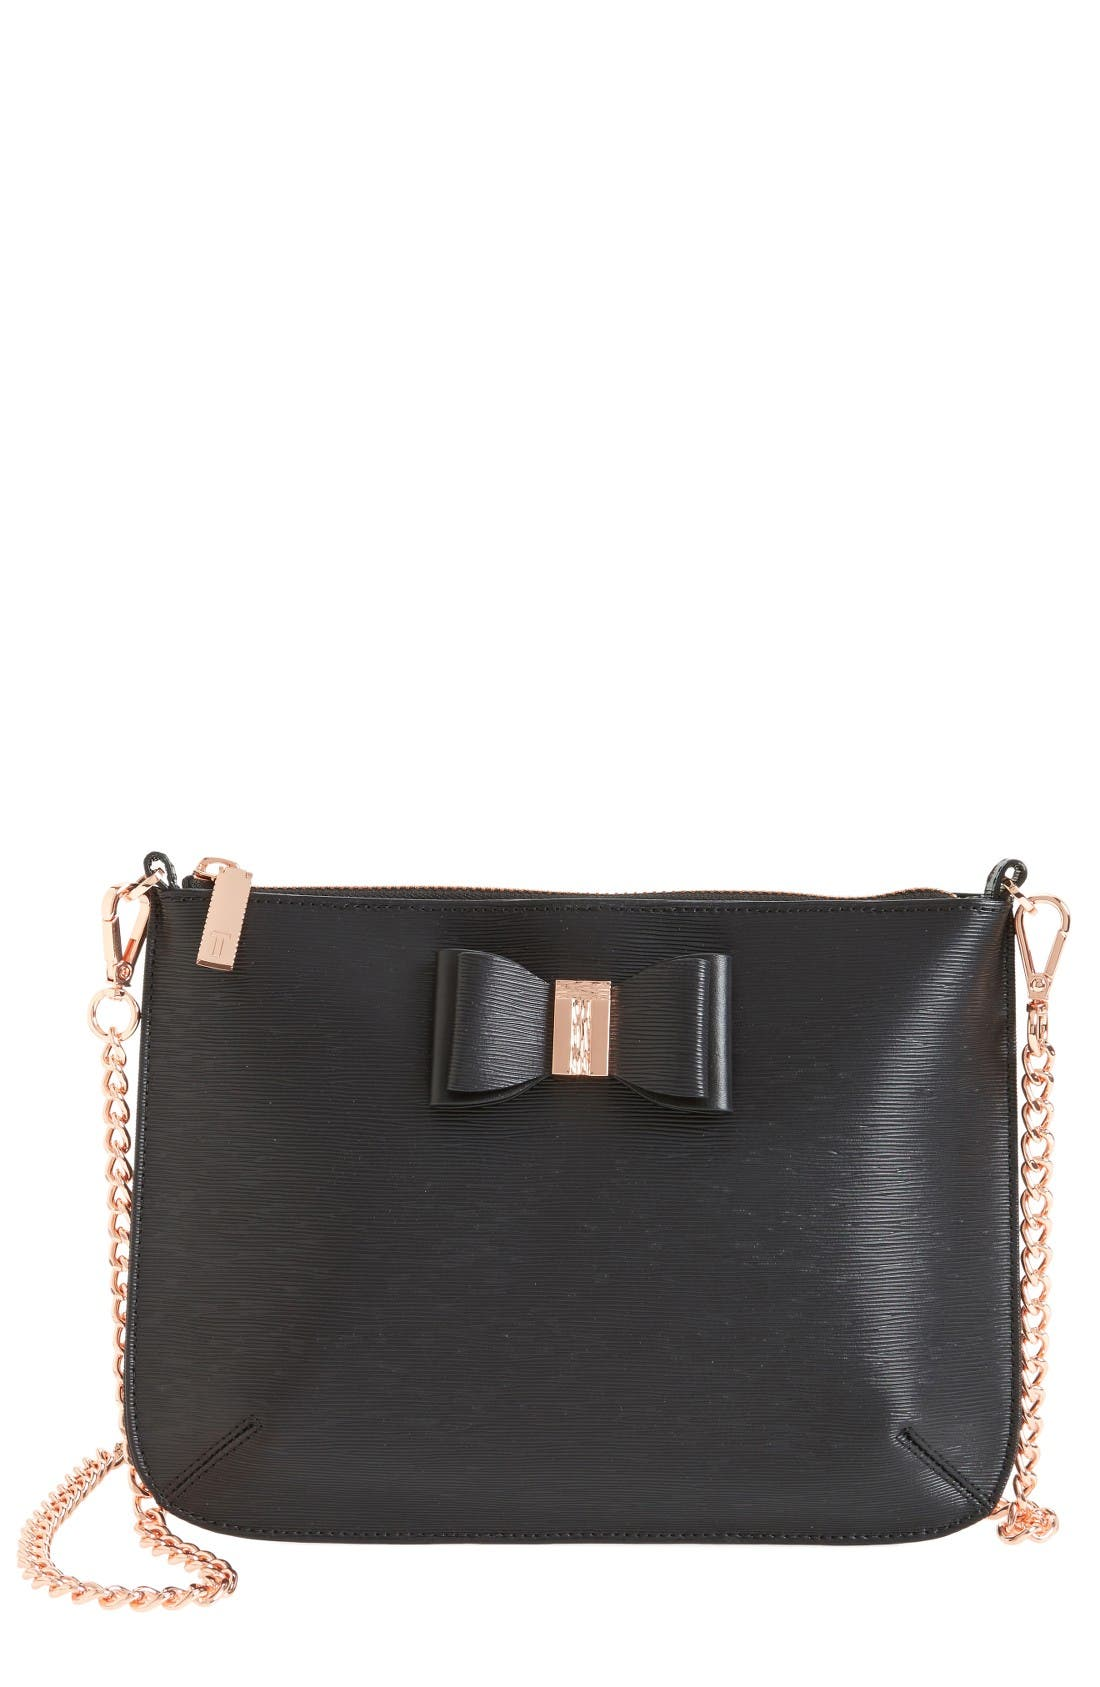 Main Image - Ted Baker London Caisey Small Leather Crossbody Bag